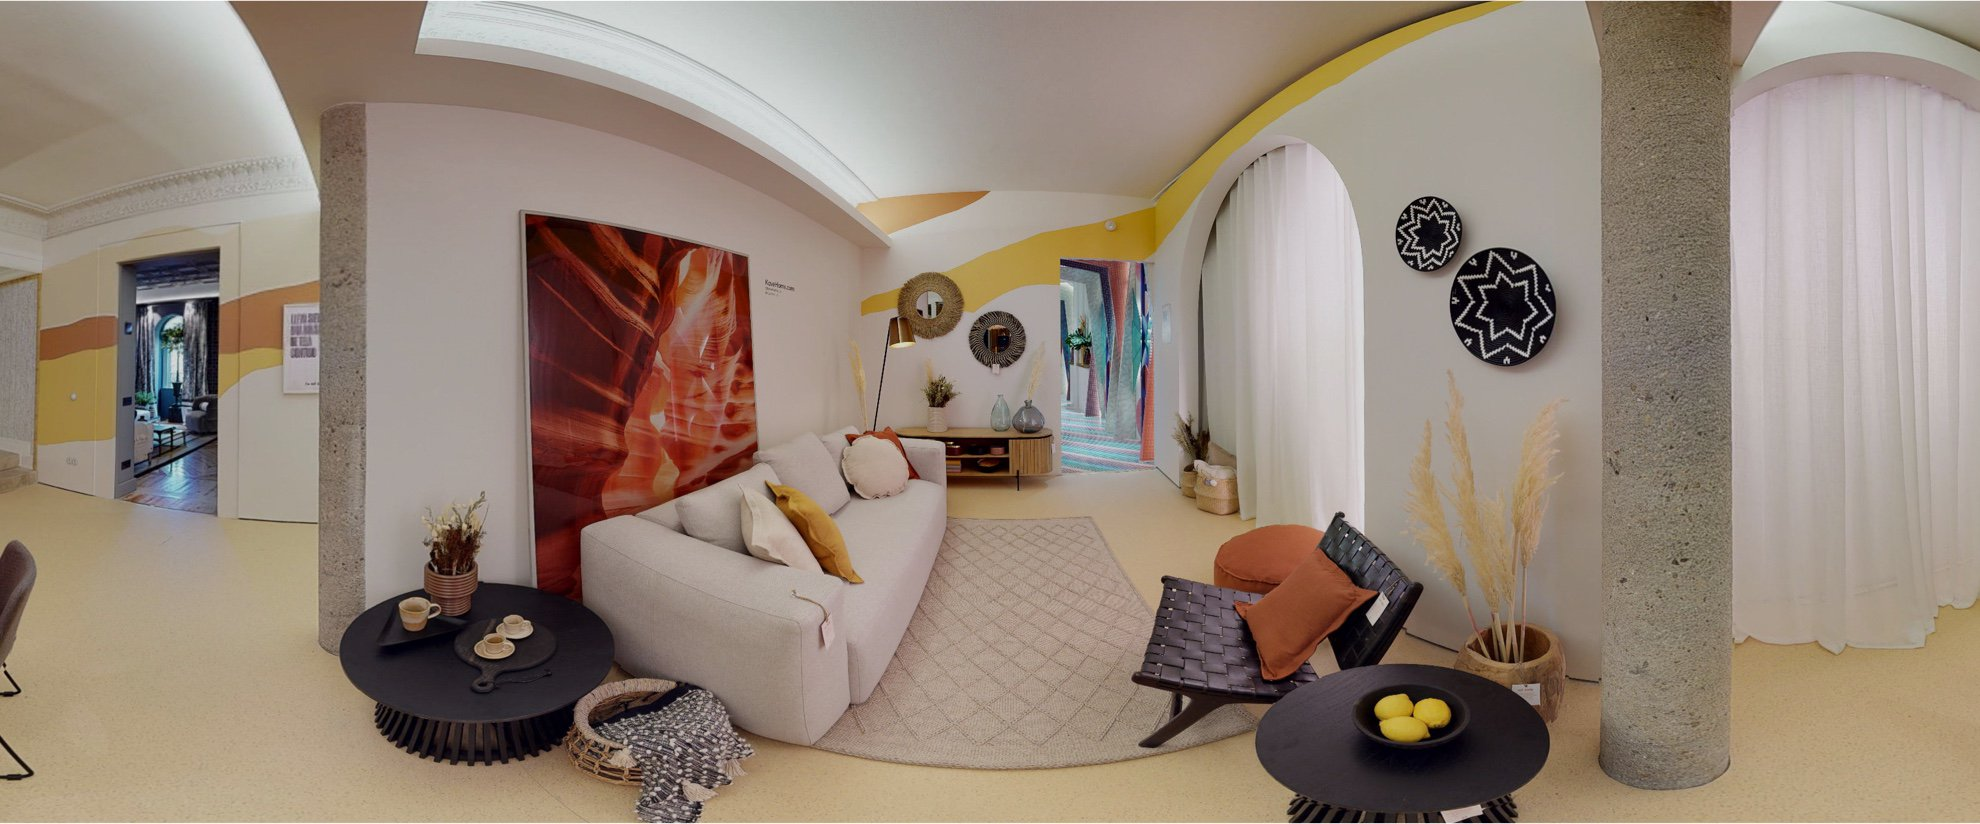 Tour_CasaDecor_01.jpg